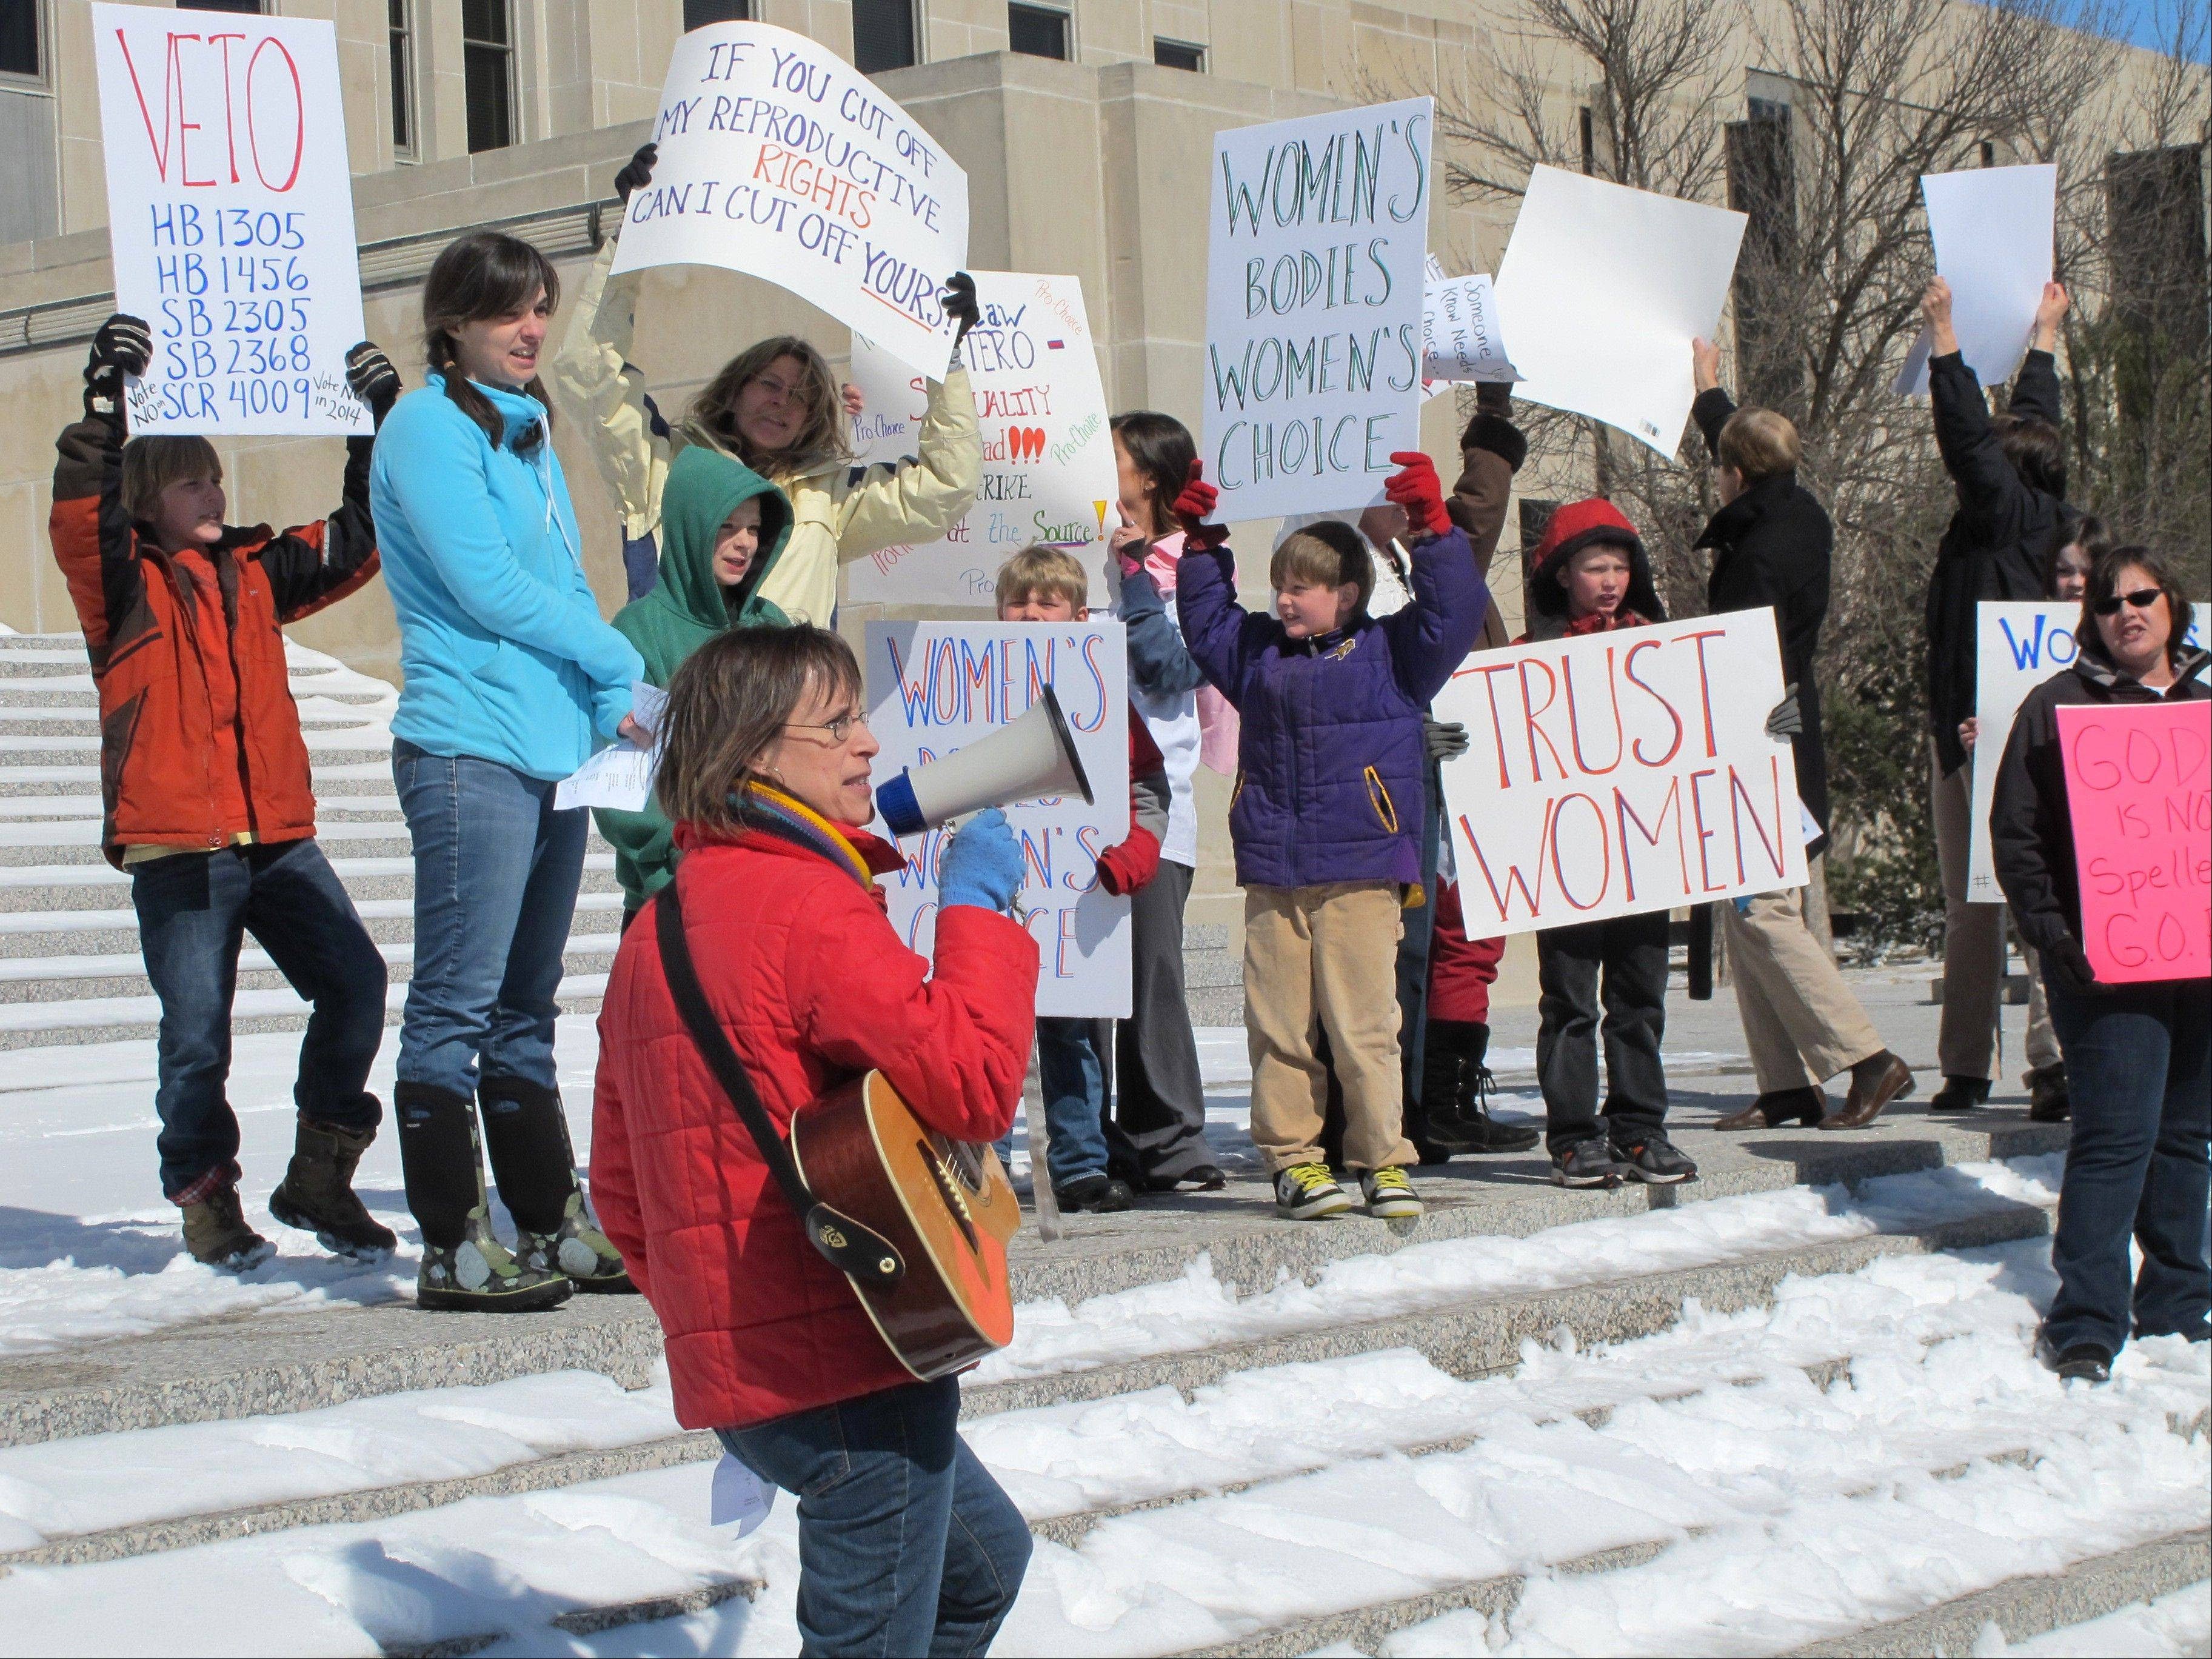 An abortion-rights rally is held at the state Capitol in Bismarck, N.D., on March 25. Rival legal teams, each well-financed and highly motivated, are girding for high-stakes court battles over the coming months on laws enacted in Arkansas and North Dakota that would impose the nation's toughest bans on abortion.